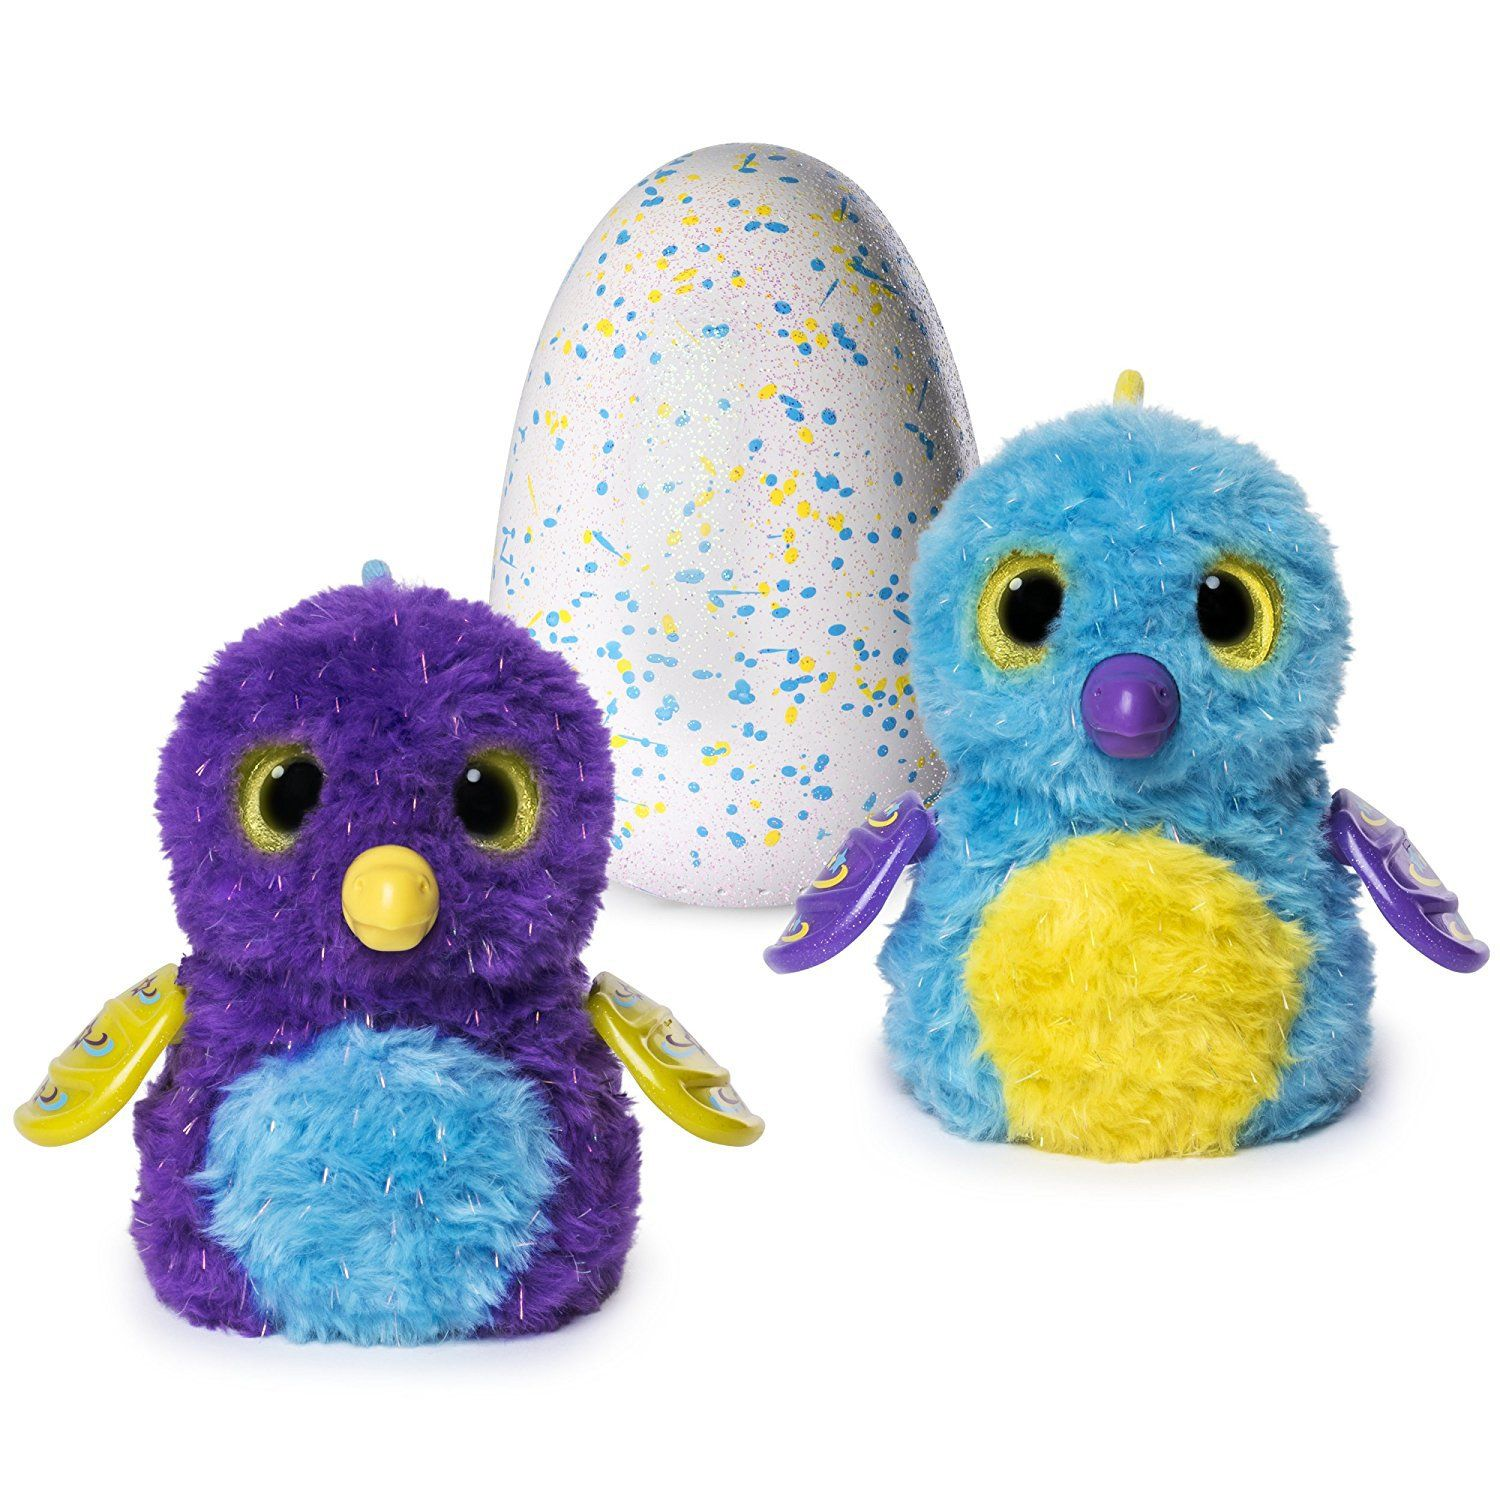 What To Buy A 7 Year Old Girl For Christmas In 2019 Egg Toys